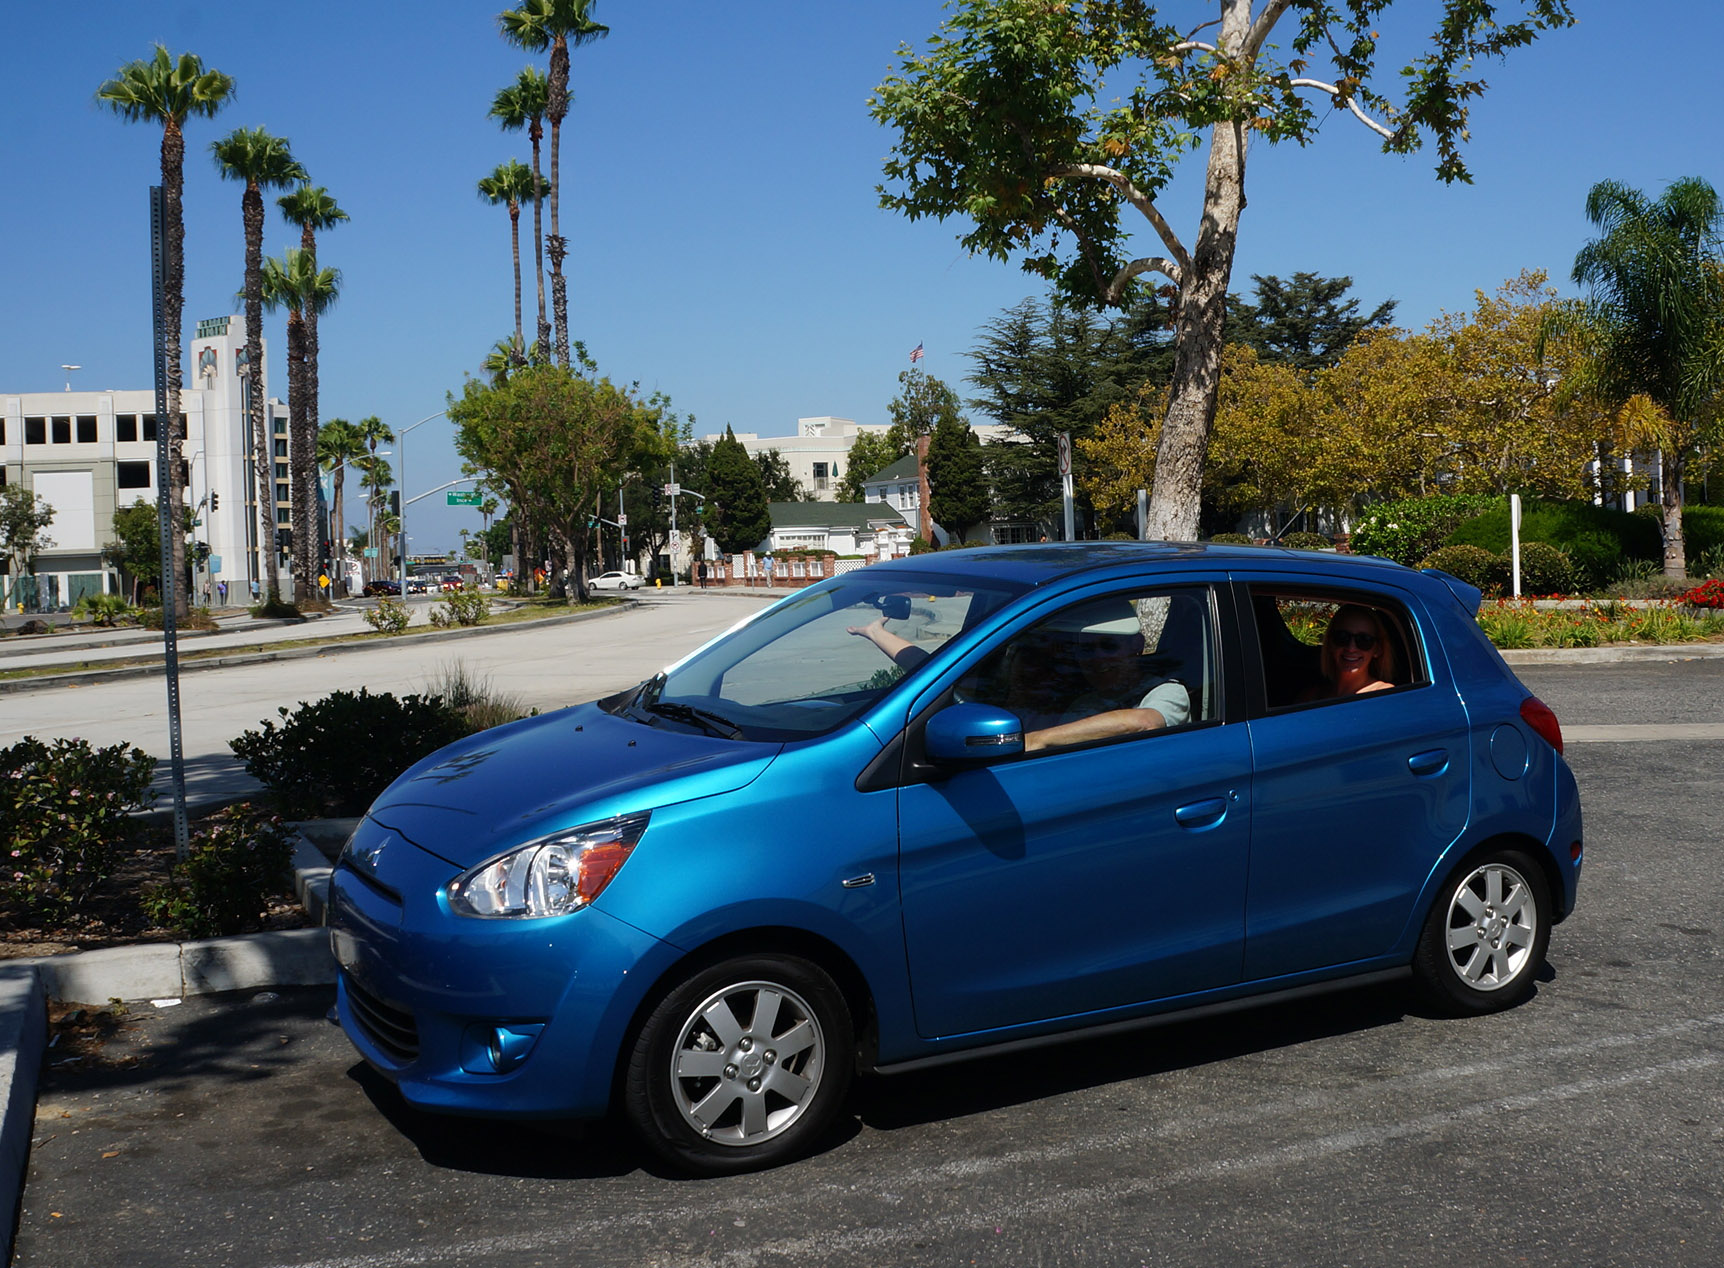 Best Car For City Dricing Mitsubishi Mirage Is Easy To Park